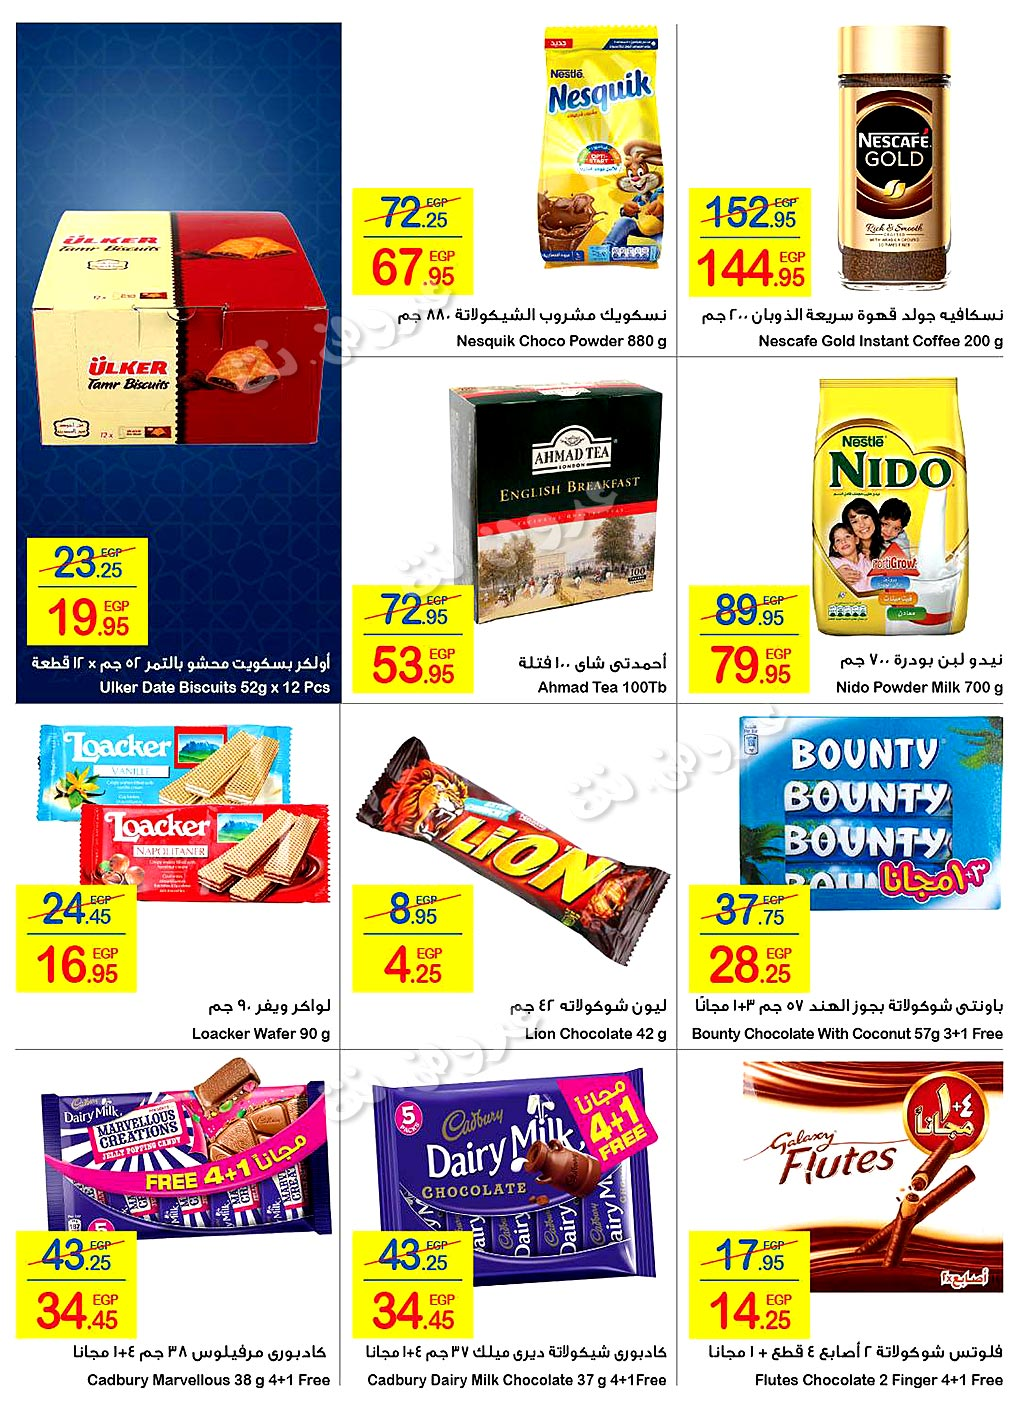 carrefour-market offers from 29july to 14aug 2019 page number 9 عروض كارفور ماركت من 29 يوليو حتى 14 أغسطس 2019 صفحة رقم 9